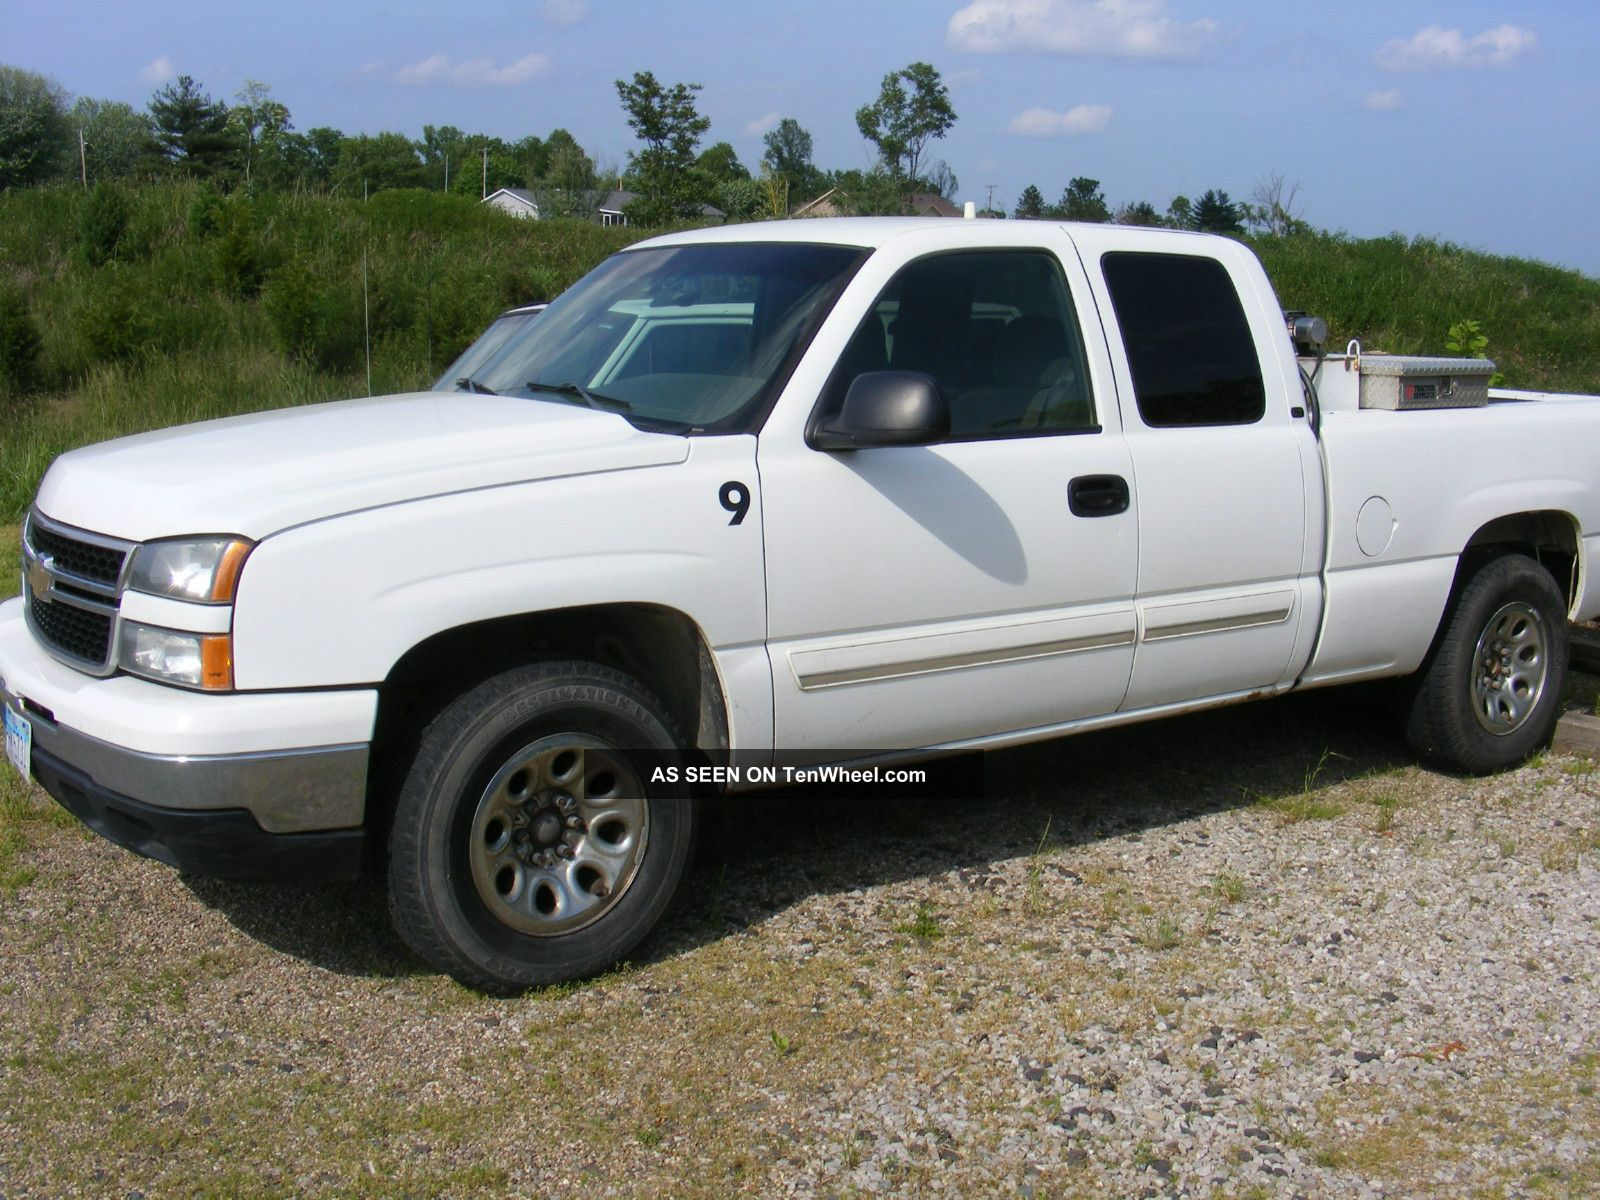 2006 silverado lt extended cab transmission oil capacity. Black Bedroom Furniture Sets. Home Design Ideas